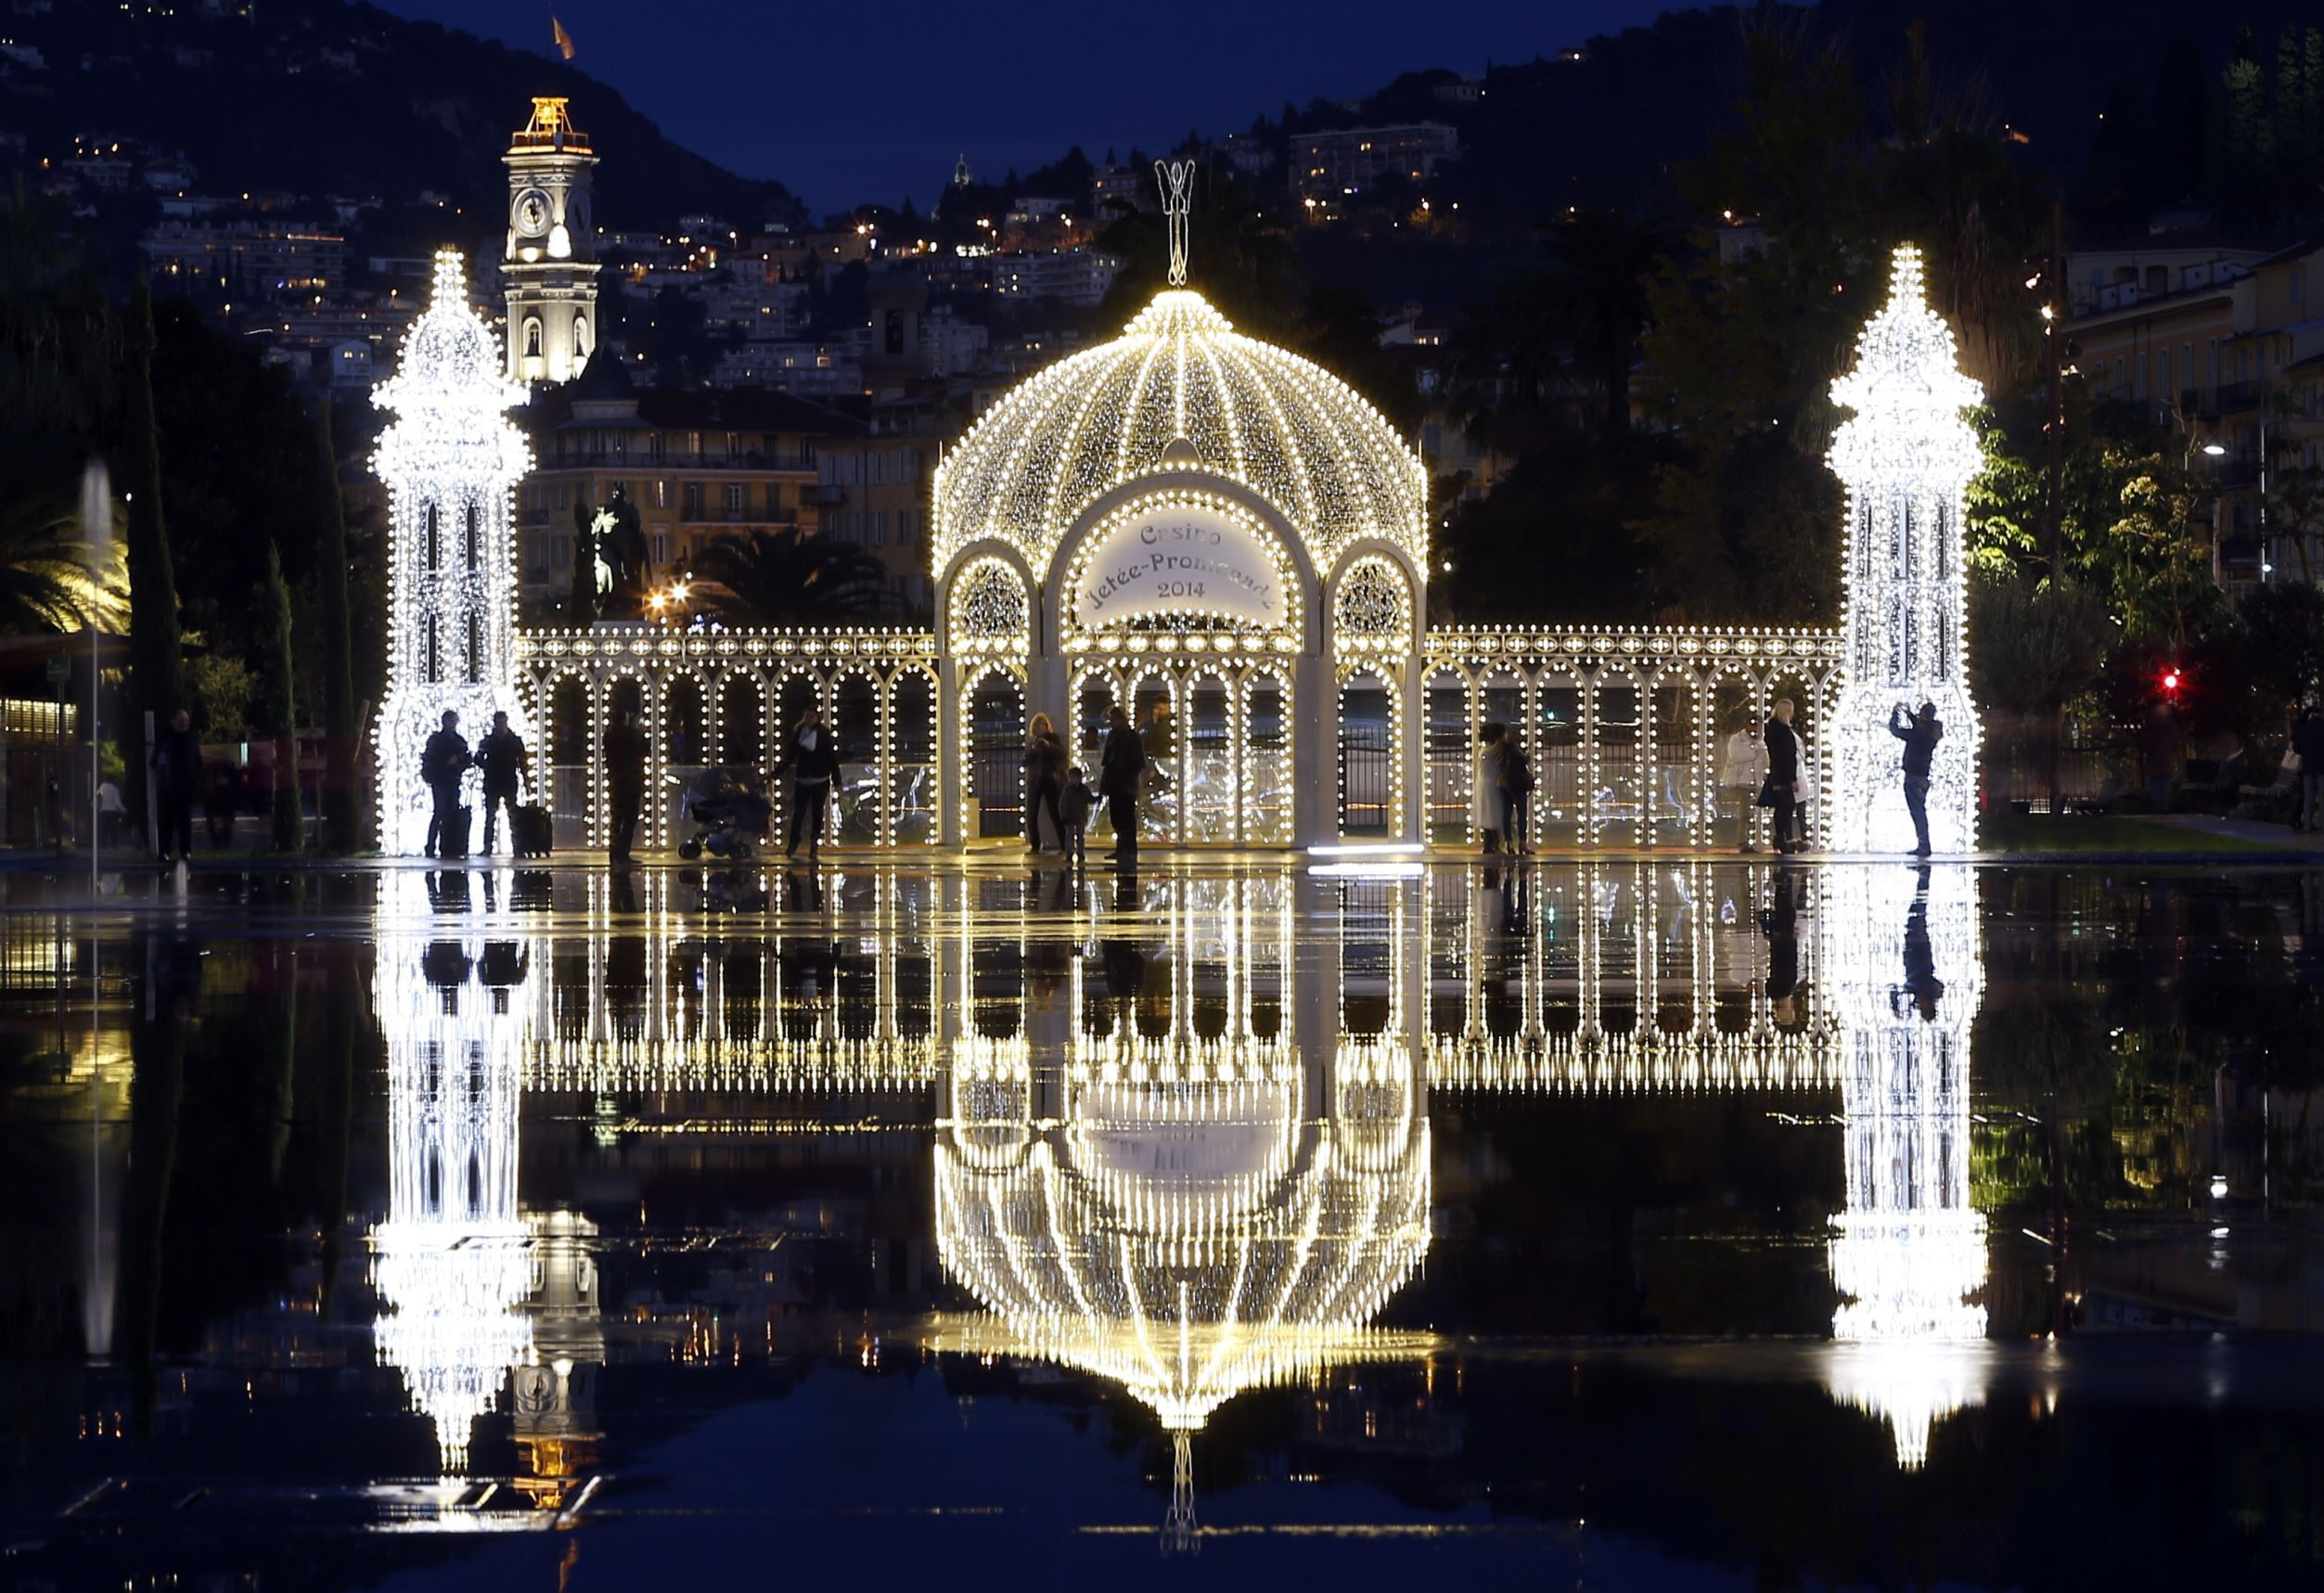 Here's a look at some places illuminated with electric lights this festive season.